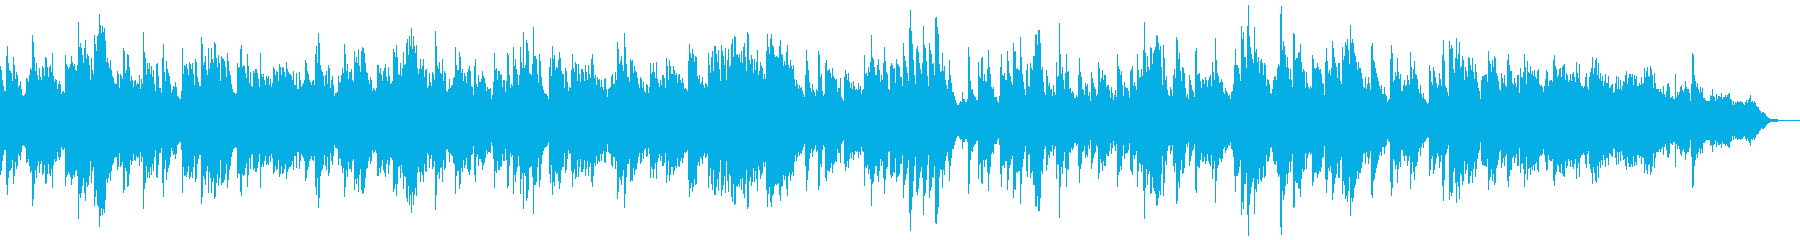 Loose Classic Nocturne (Fl.)'s reproduced waveform